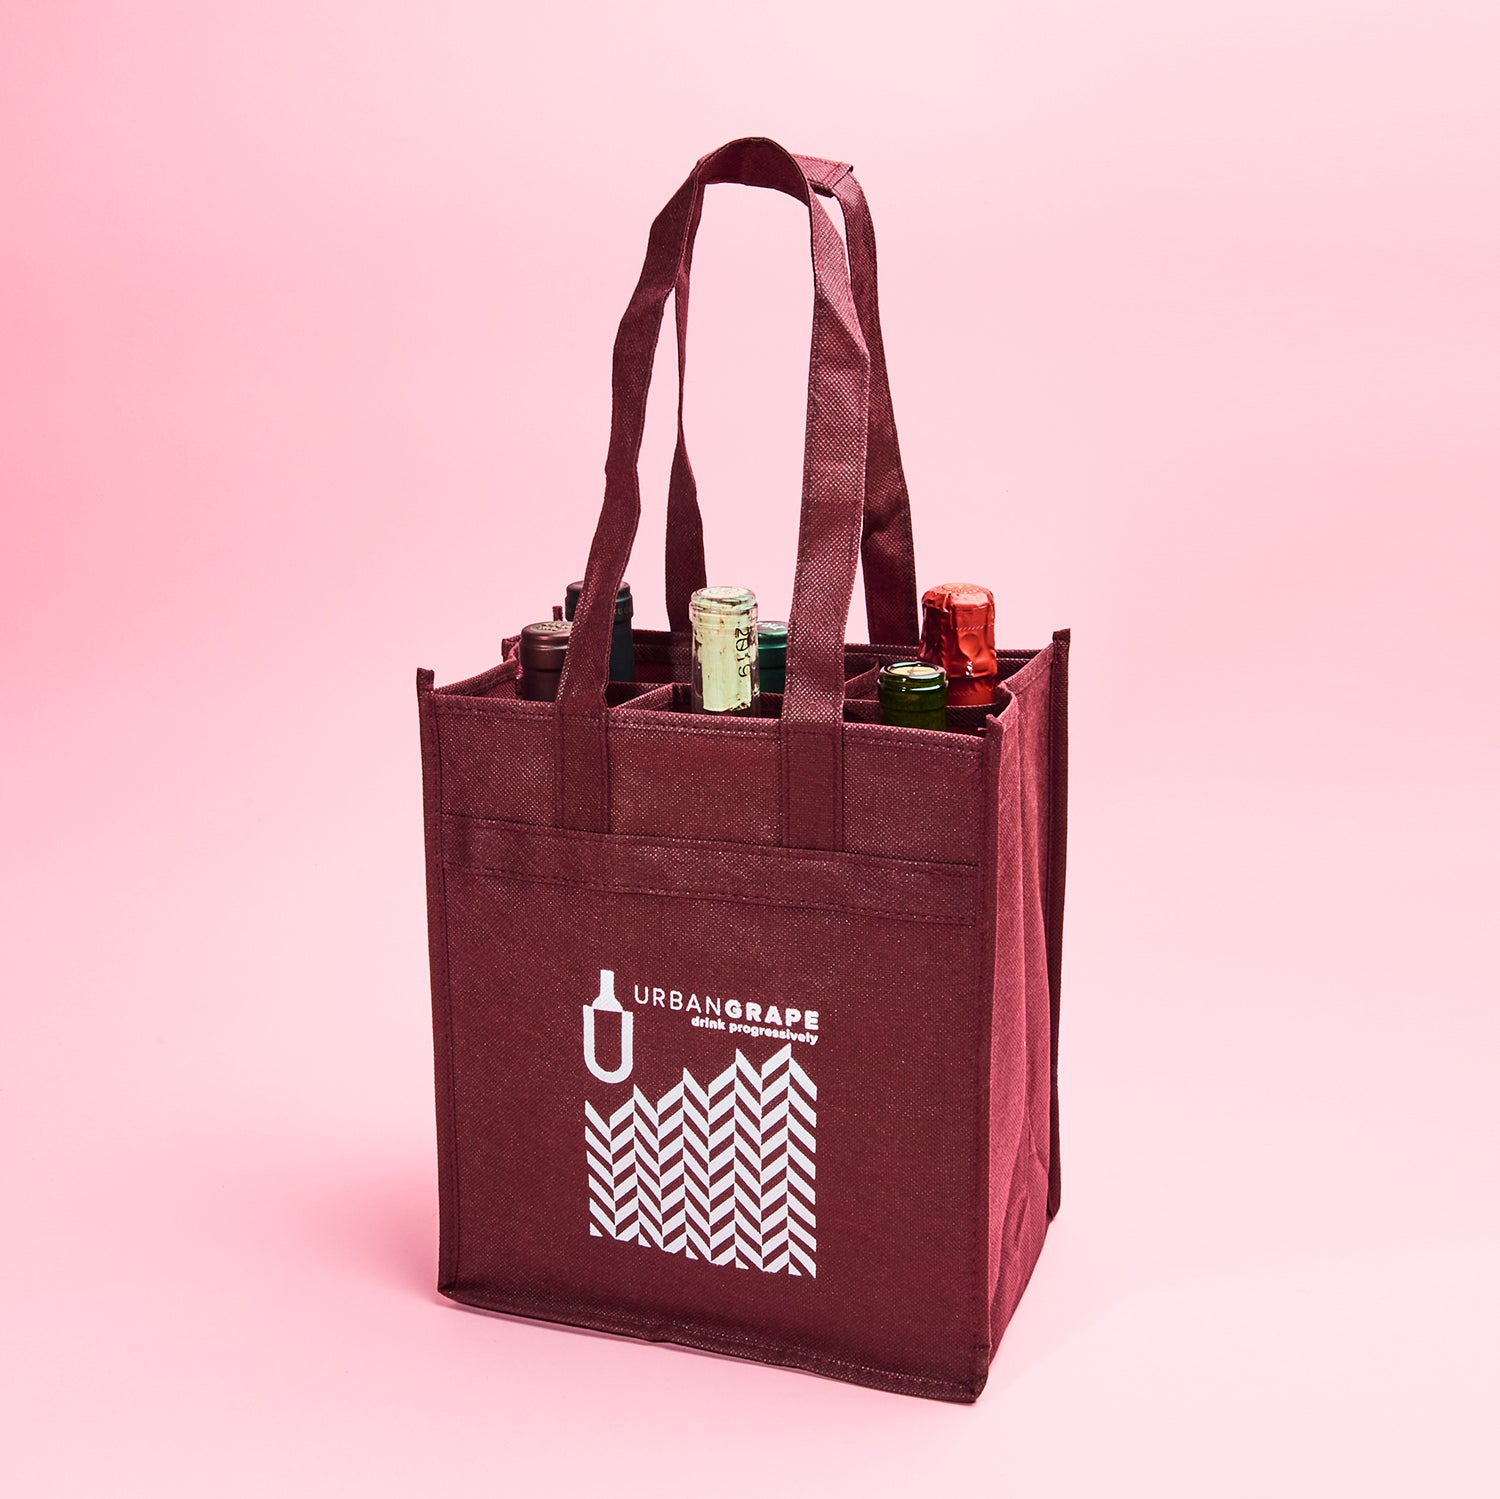 Urban Grape Reusable 6 Bottle Bag